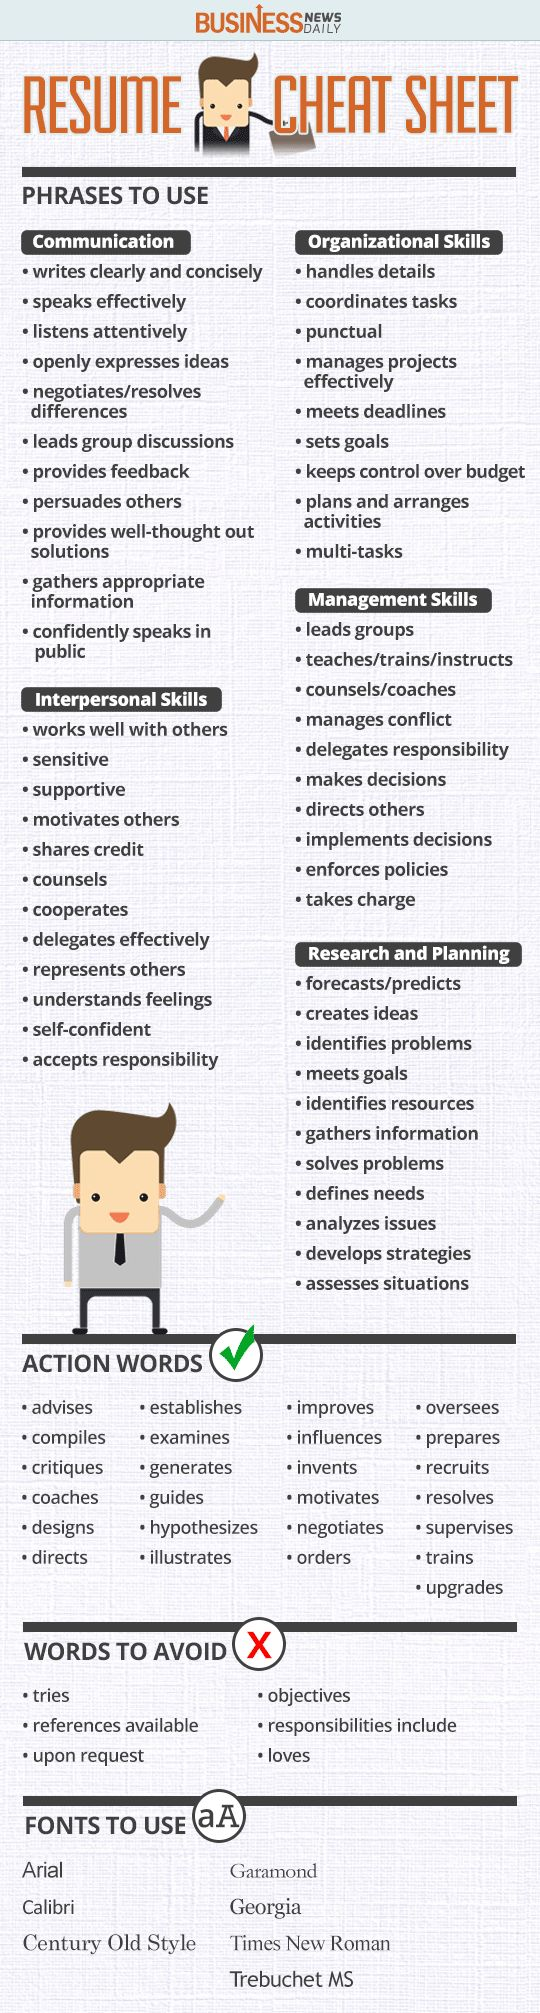 Opposenewapstandardsus  Personable  Ideas About Resume On Pinterest  Cv Format Resume Cv And  With Exquisite Resume Cheat Sheet Infographic Andrews Almost Done With A Complete Unit On Employment Which With Breathtaking Sample Sales Resumes Also Pediatrician Resume In Addition Resume Business Cards And Should You Include References On Your Resume As Well As Education Part Of Resume Additionally Google Resume Examples From Pinterestcom With Opposenewapstandardsus  Exquisite  Ideas About Resume On Pinterest  Cv Format Resume Cv And  With Breathtaking Resume Cheat Sheet Infographic Andrews Almost Done With A Complete Unit On Employment Which And Personable Sample Sales Resumes Also Pediatrician Resume In Addition Resume Business Cards From Pinterestcom